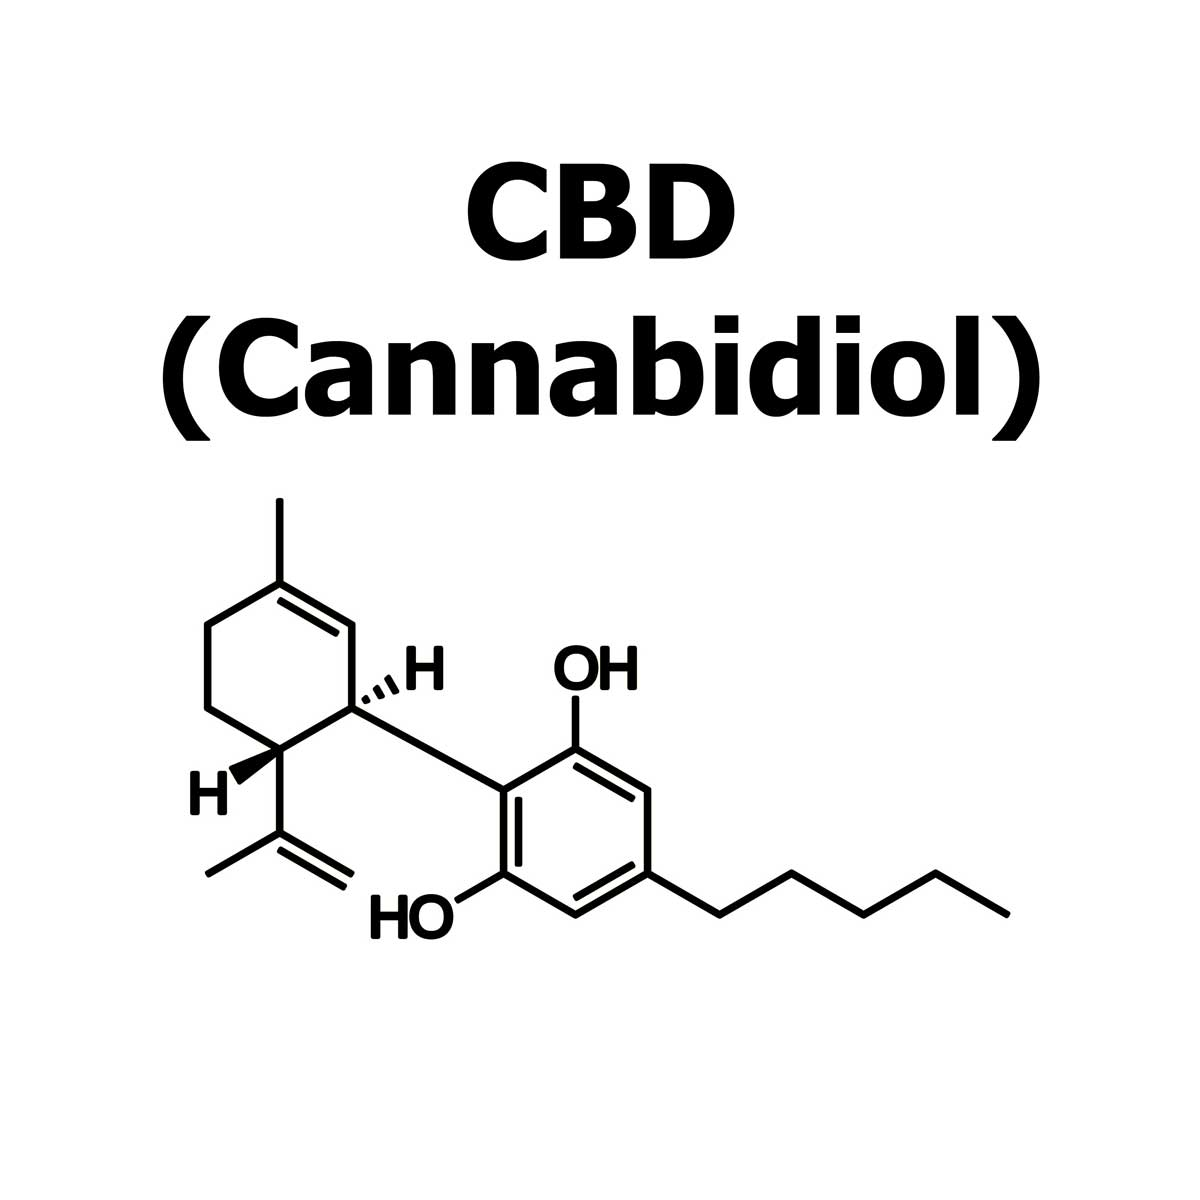 CBD, what conditions should it be used for?